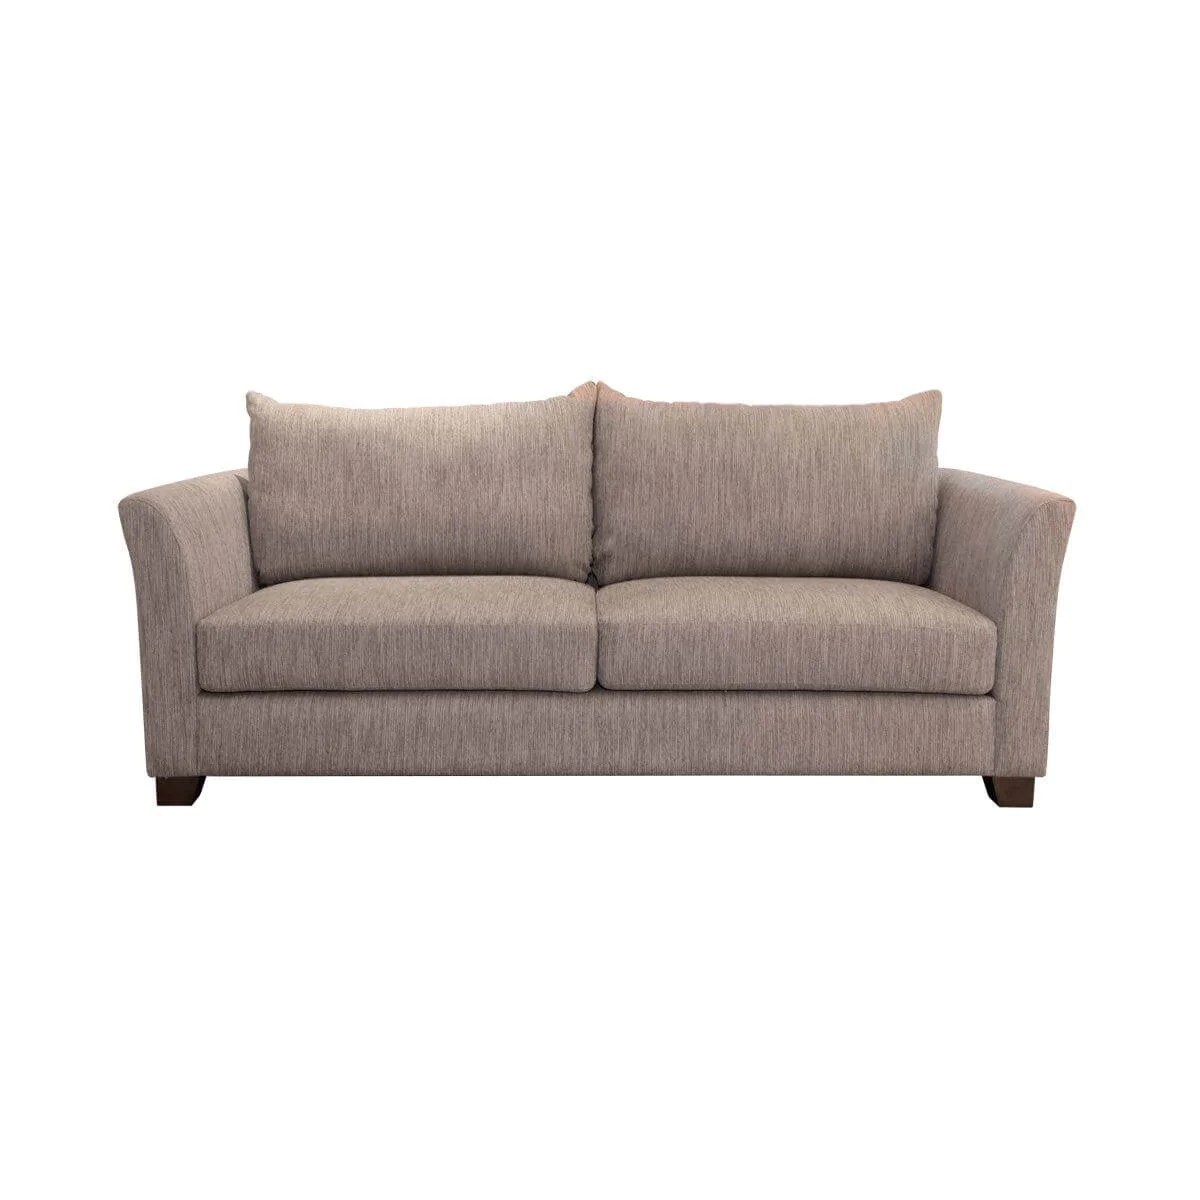 Simplicity Sofa 3 Seat Online Furniture Vinoti Living